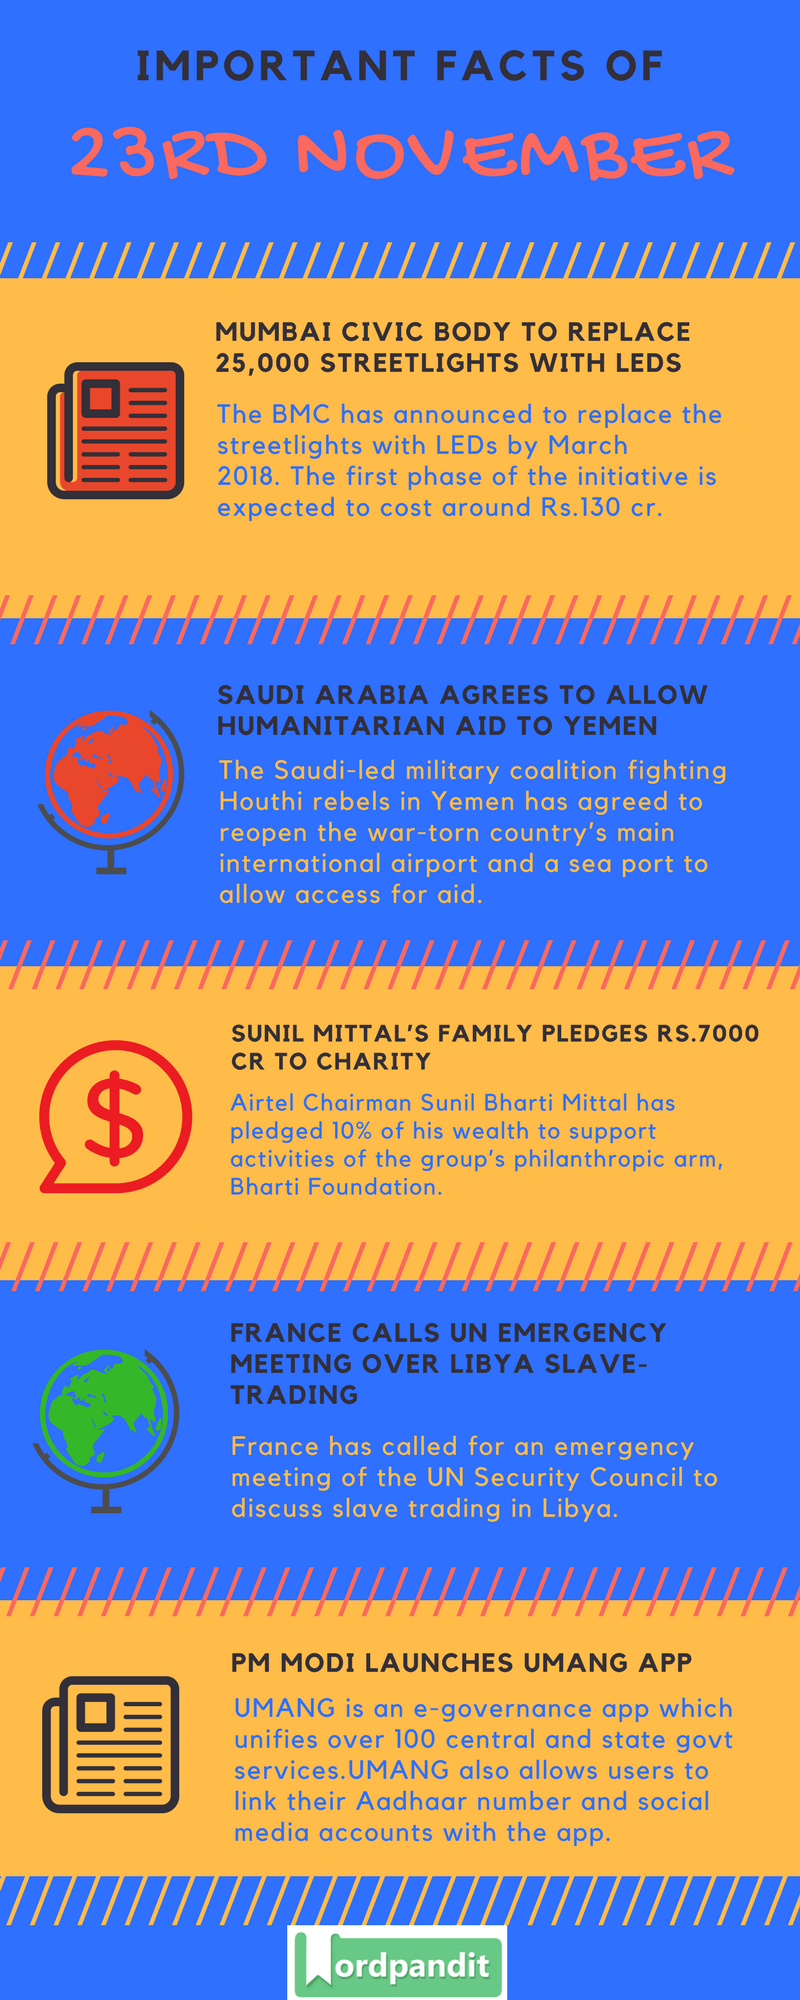 Daily-Current-Affairs-23-november-2017-Current-Affairs-Quiz-november-23-2017-Current-Affairs-Infographic